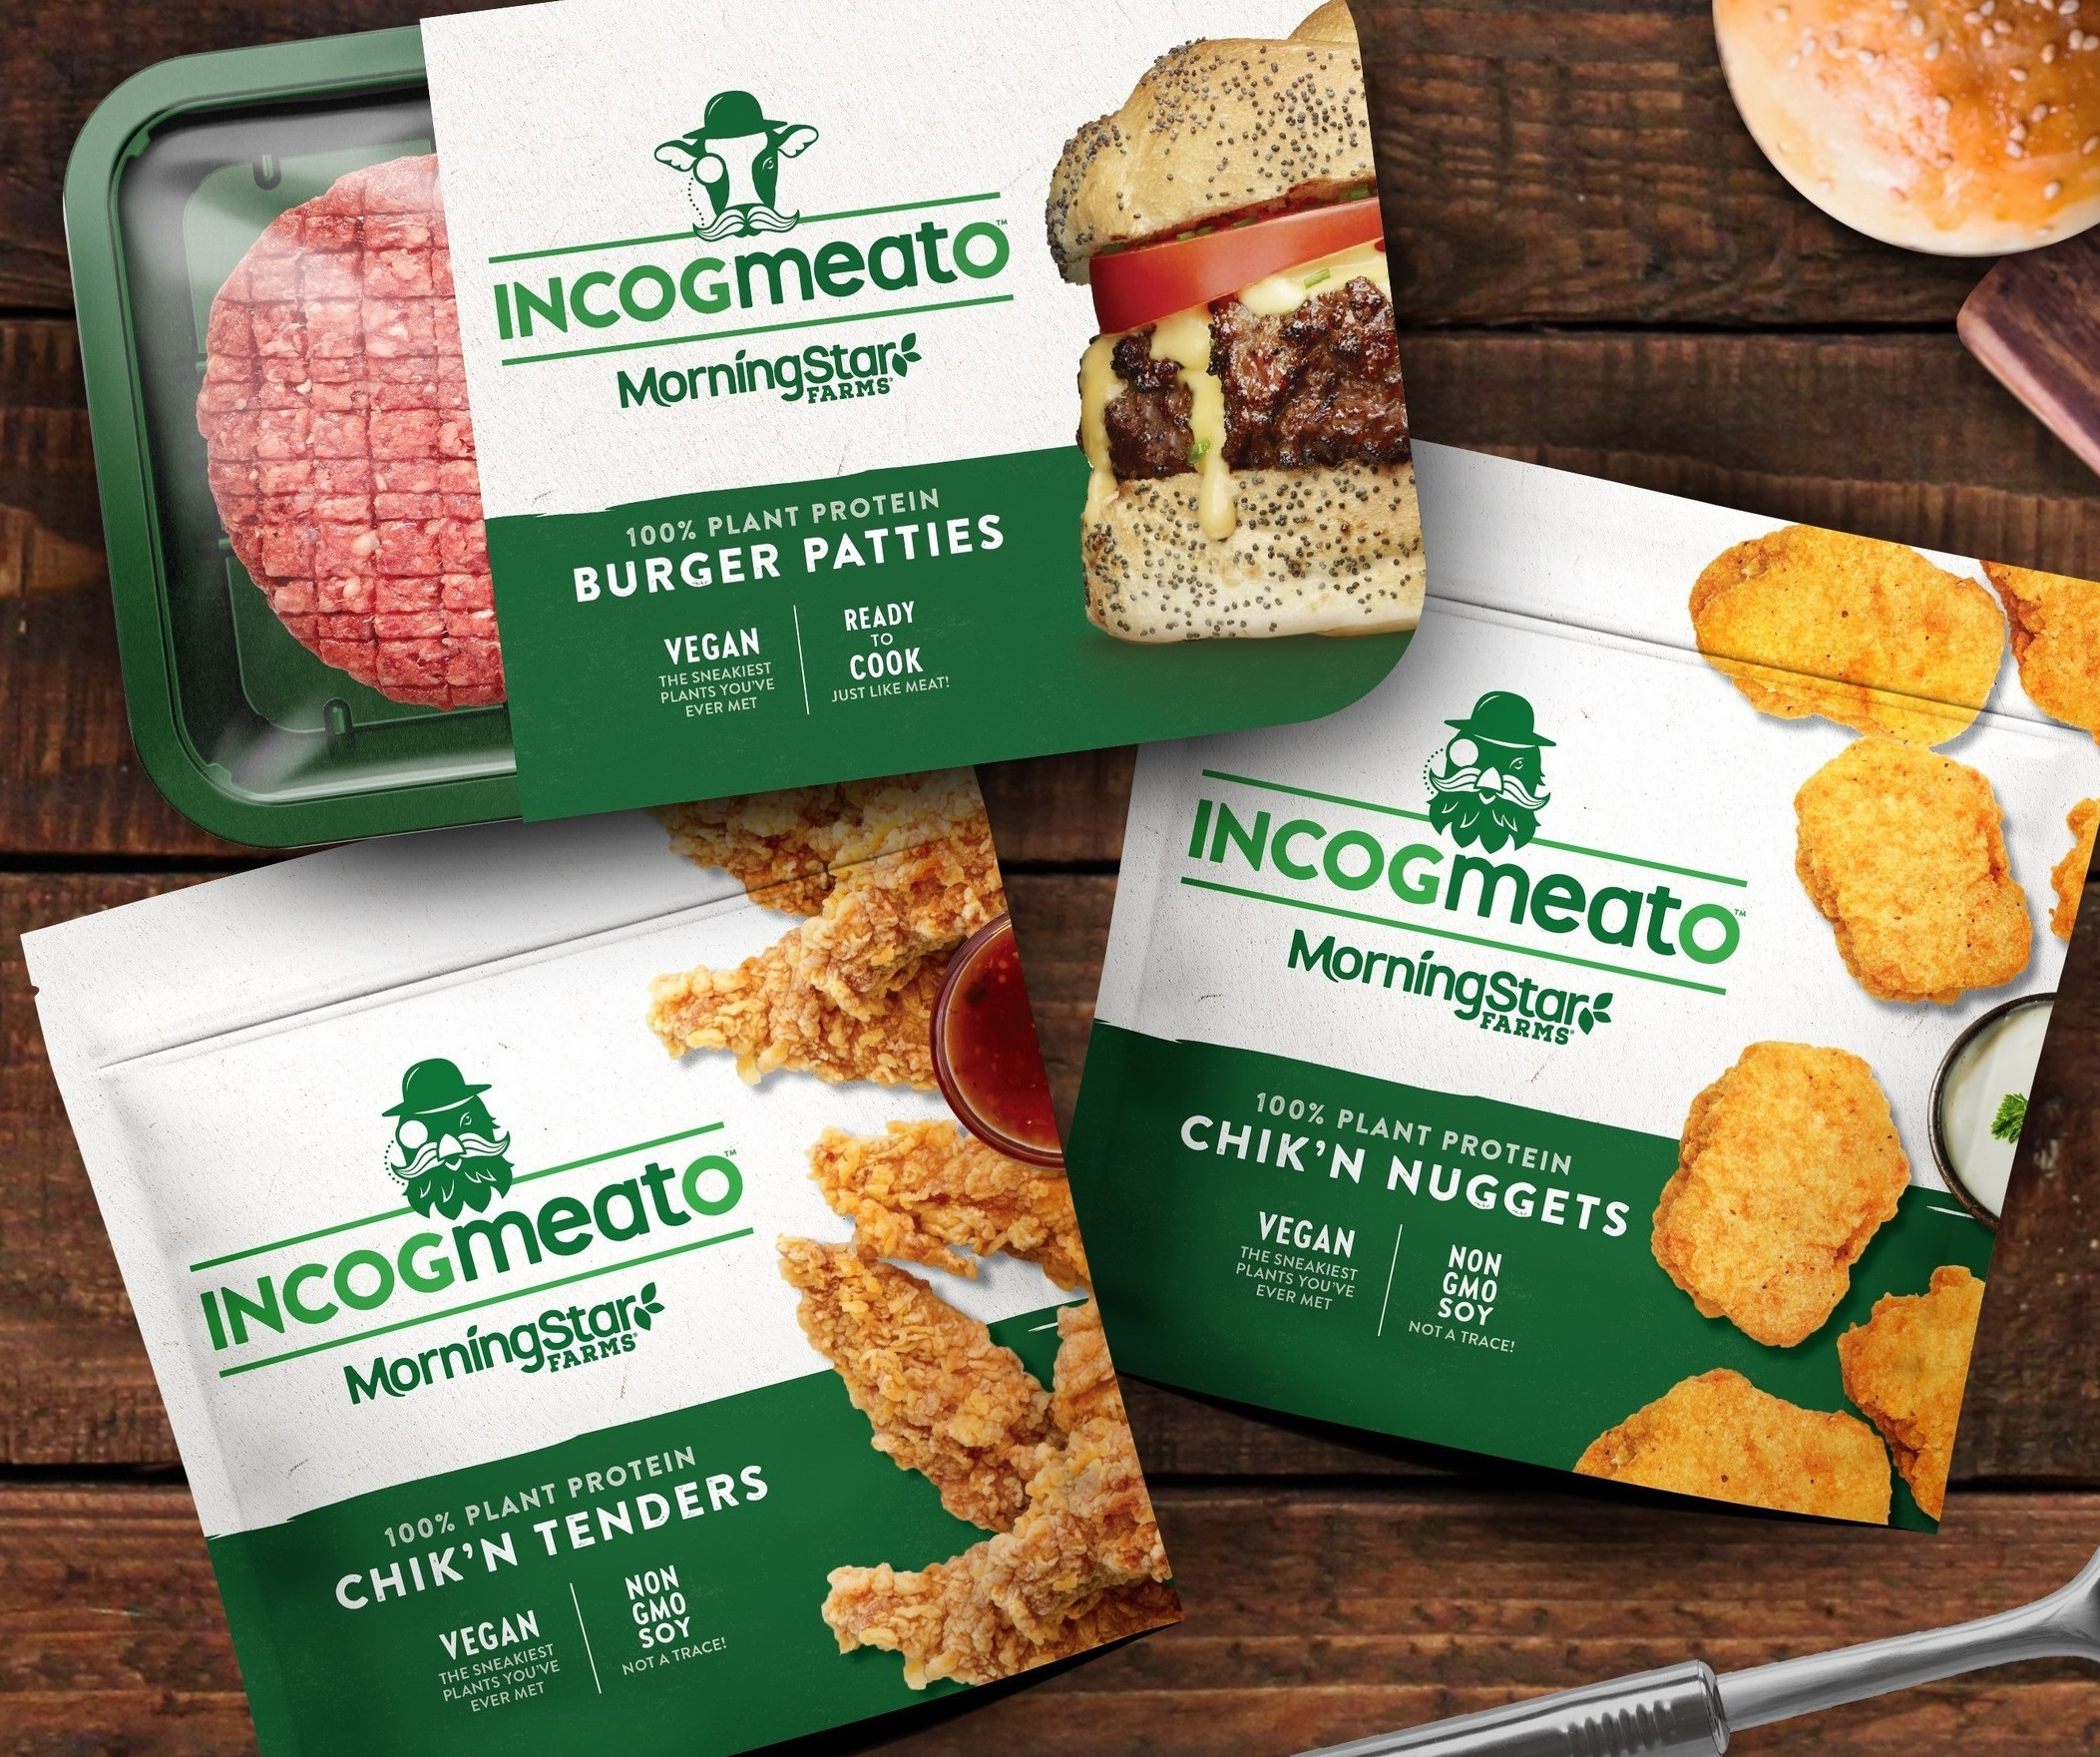 MorningStar Farms Incogmeato products